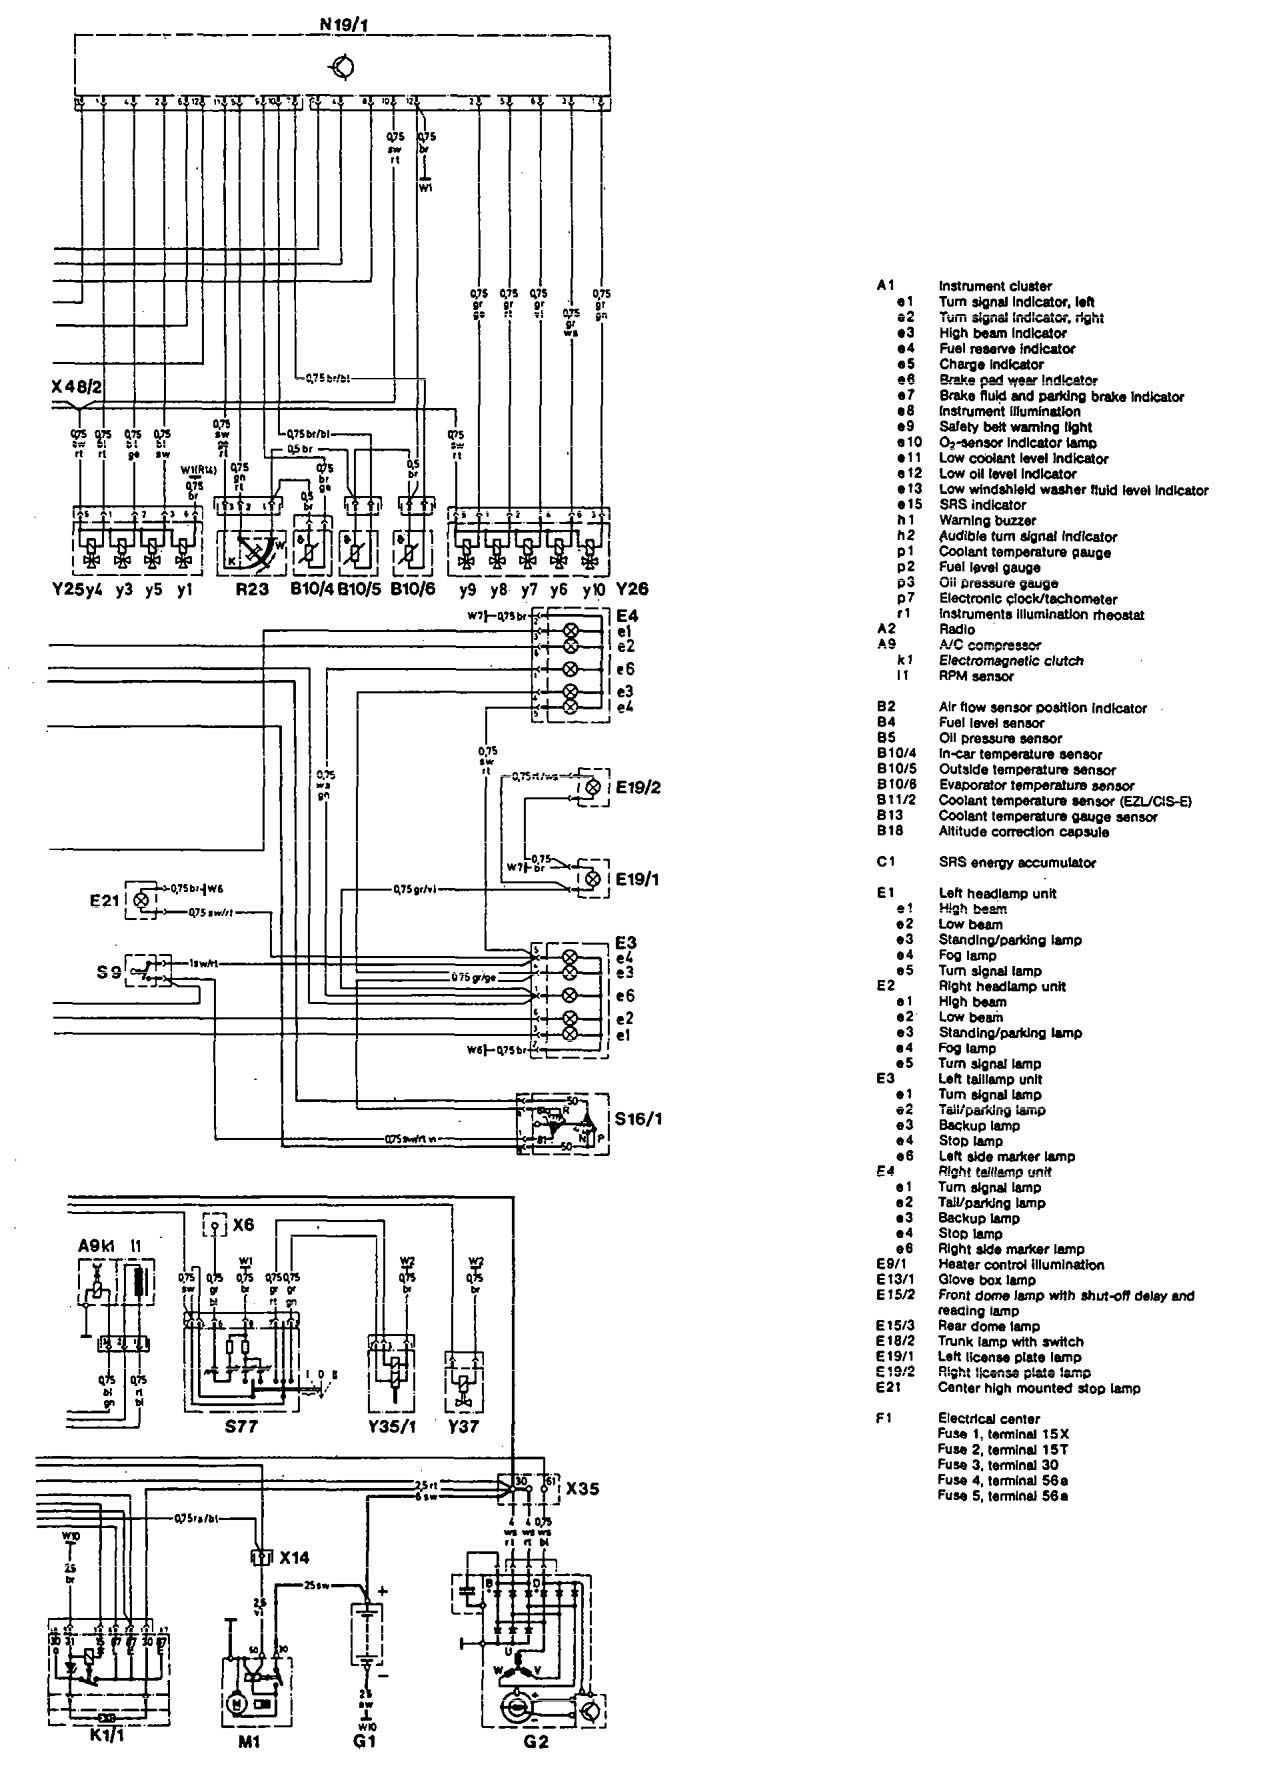 2001 c240 wiring diagram